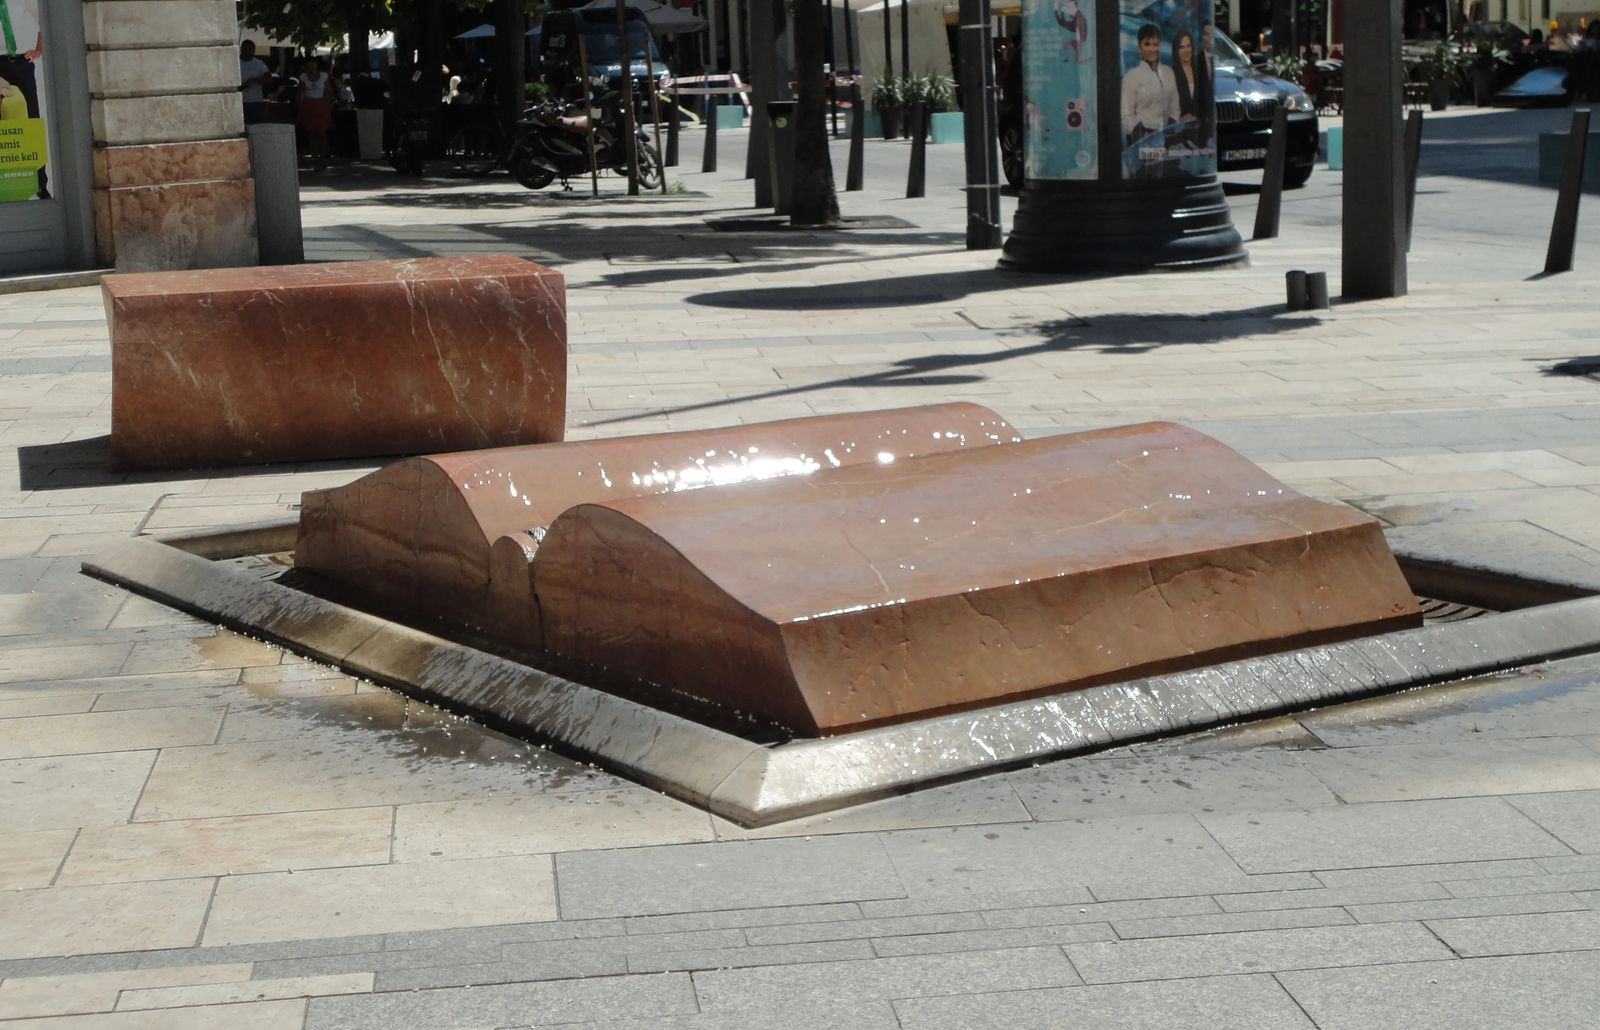 Photo of a fountain shaped like a book with an interesting water effect, located in Budapest, Hungary.